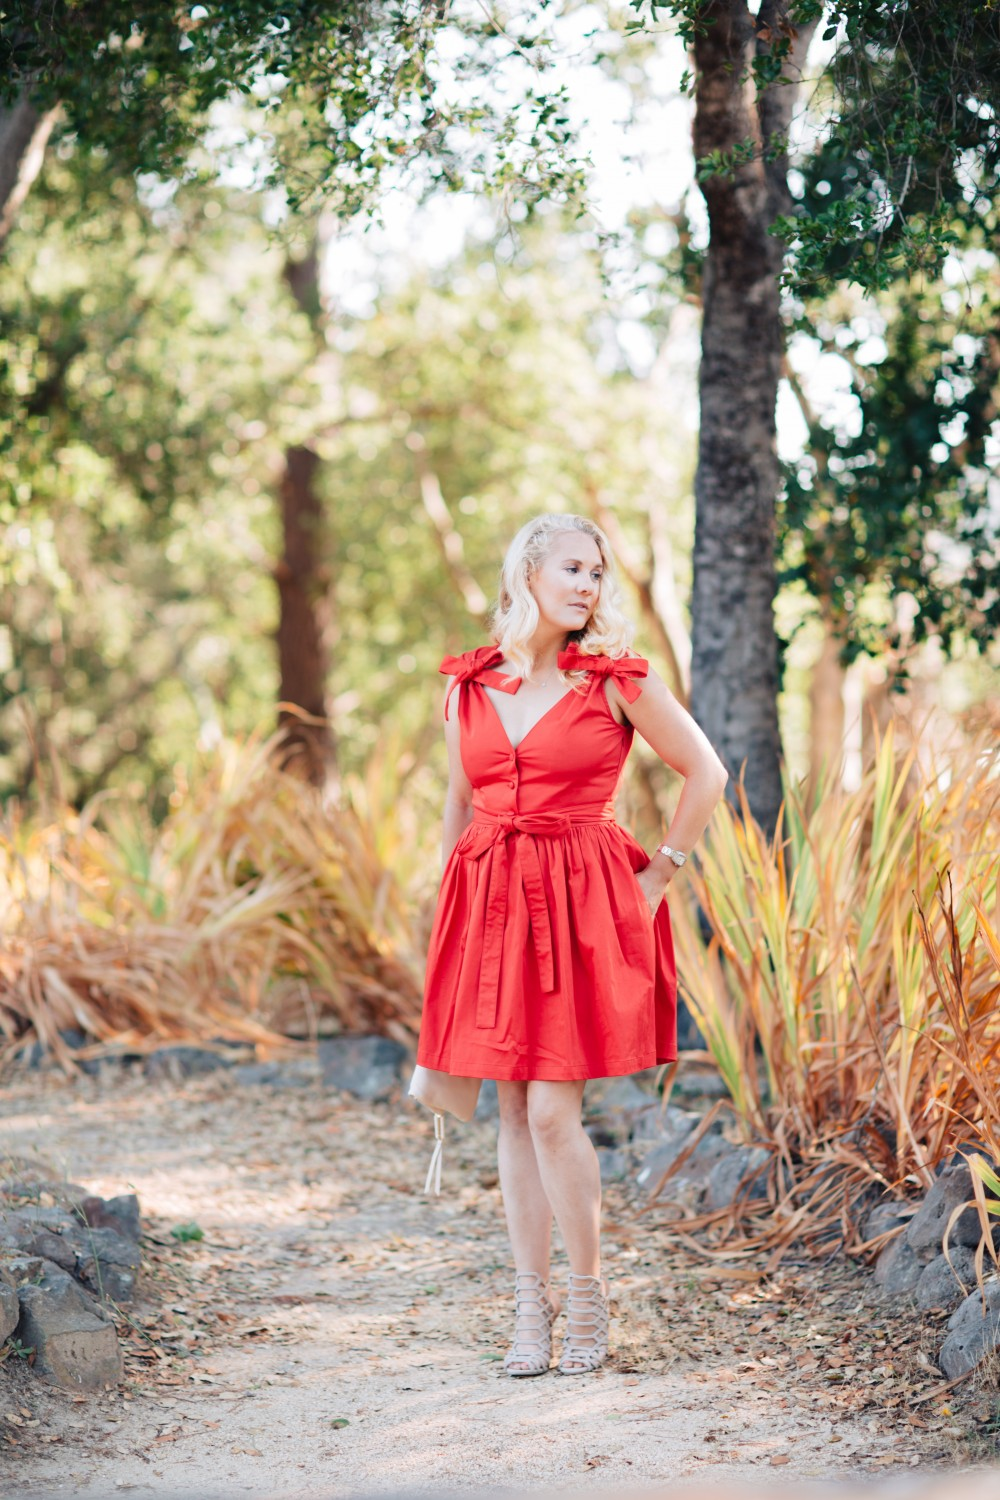 Little Red Dress-Alexis-Bow Detail Dress-Outfit Inspiration-Schutz Heels-Have Need Want 4